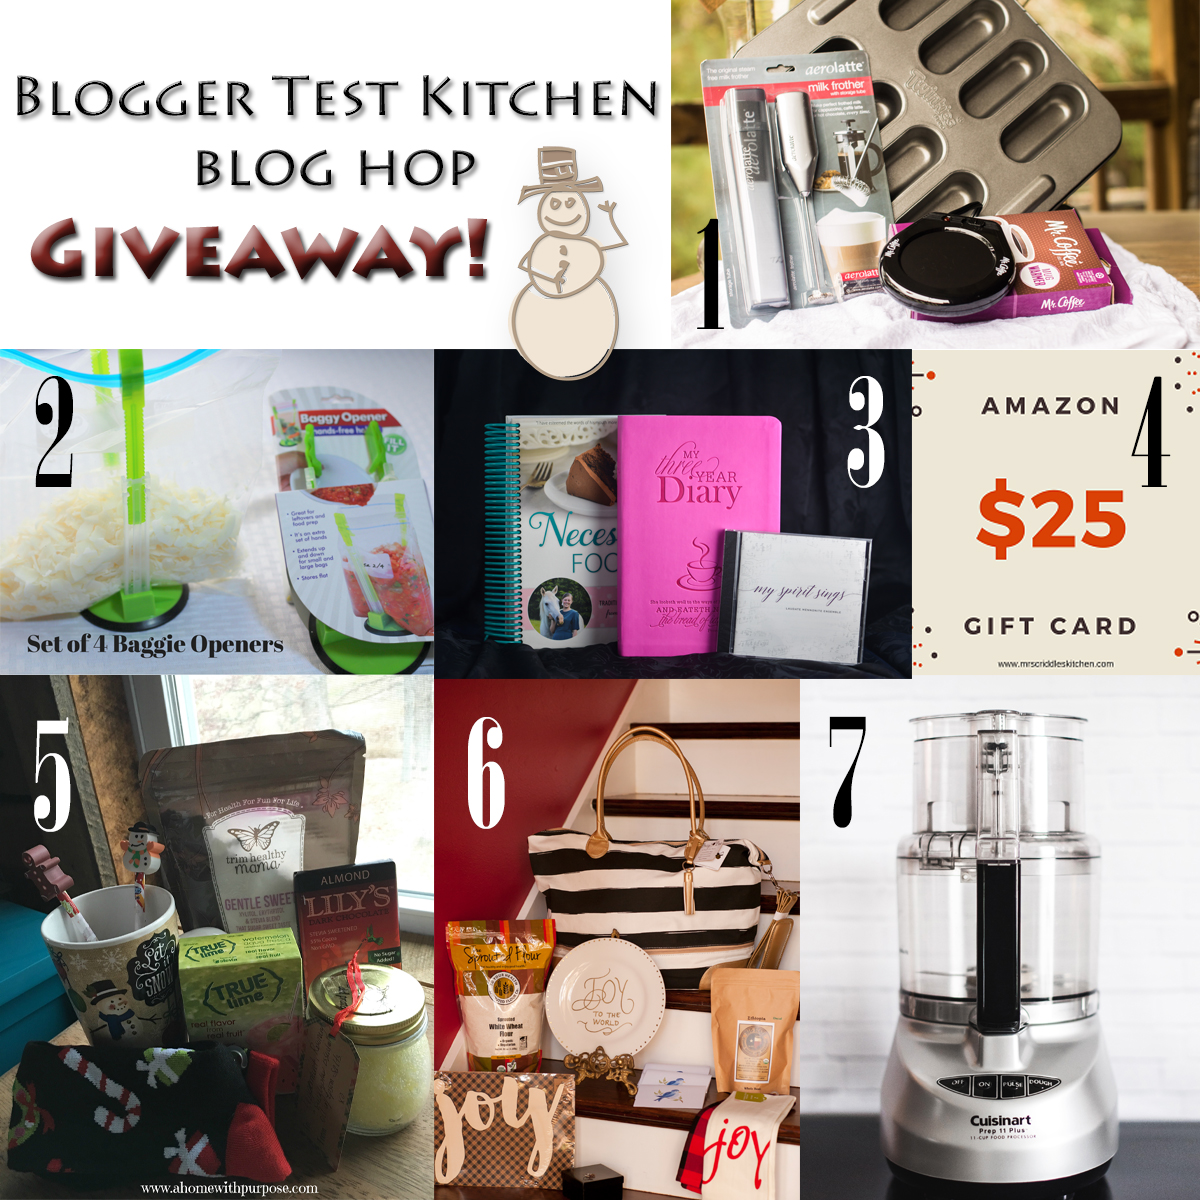 Blogger Test Kitchen Giveaway